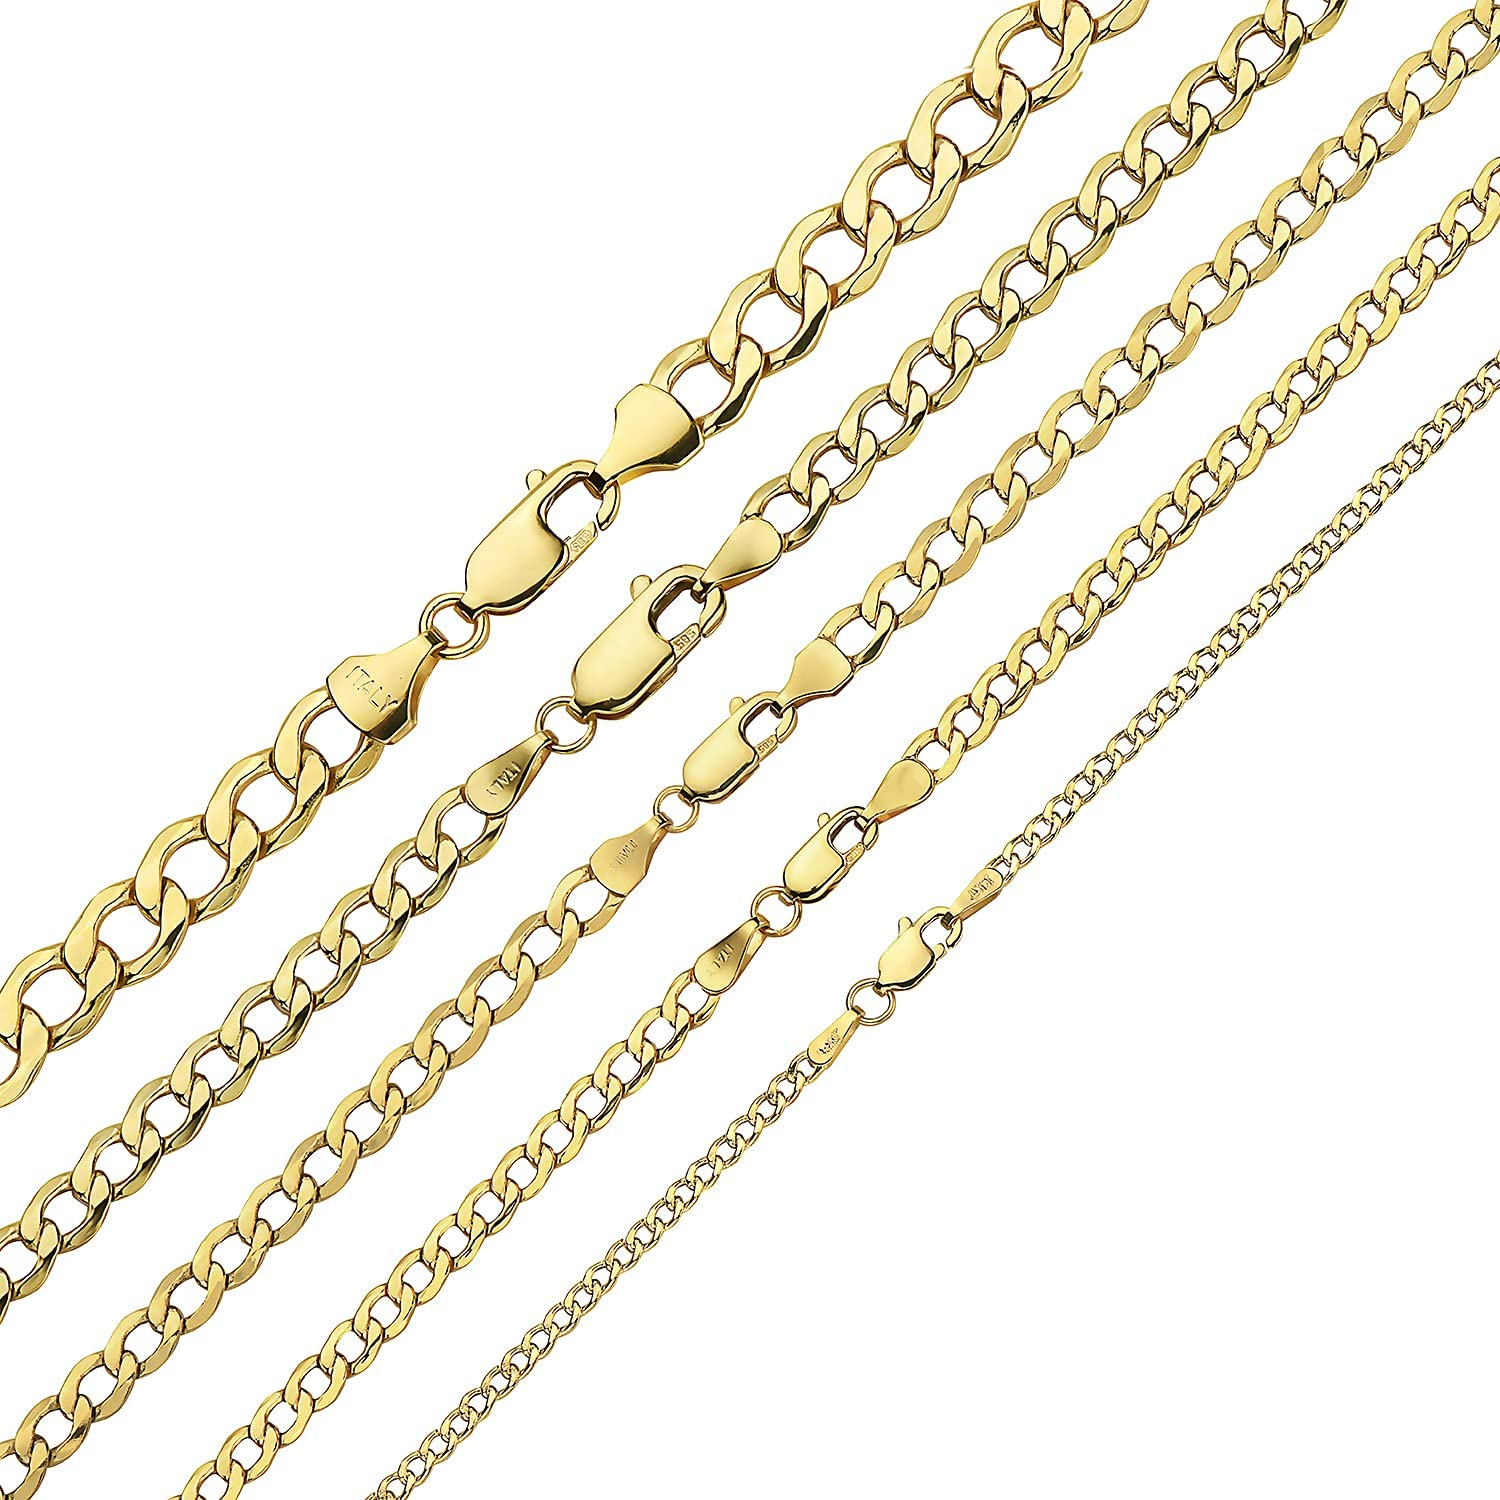 14K Gold 2.5MM 4MM 5MM 6.5MM Chain Nec Selling and selling 9MM Cuban Curb 7.5MM Super sale